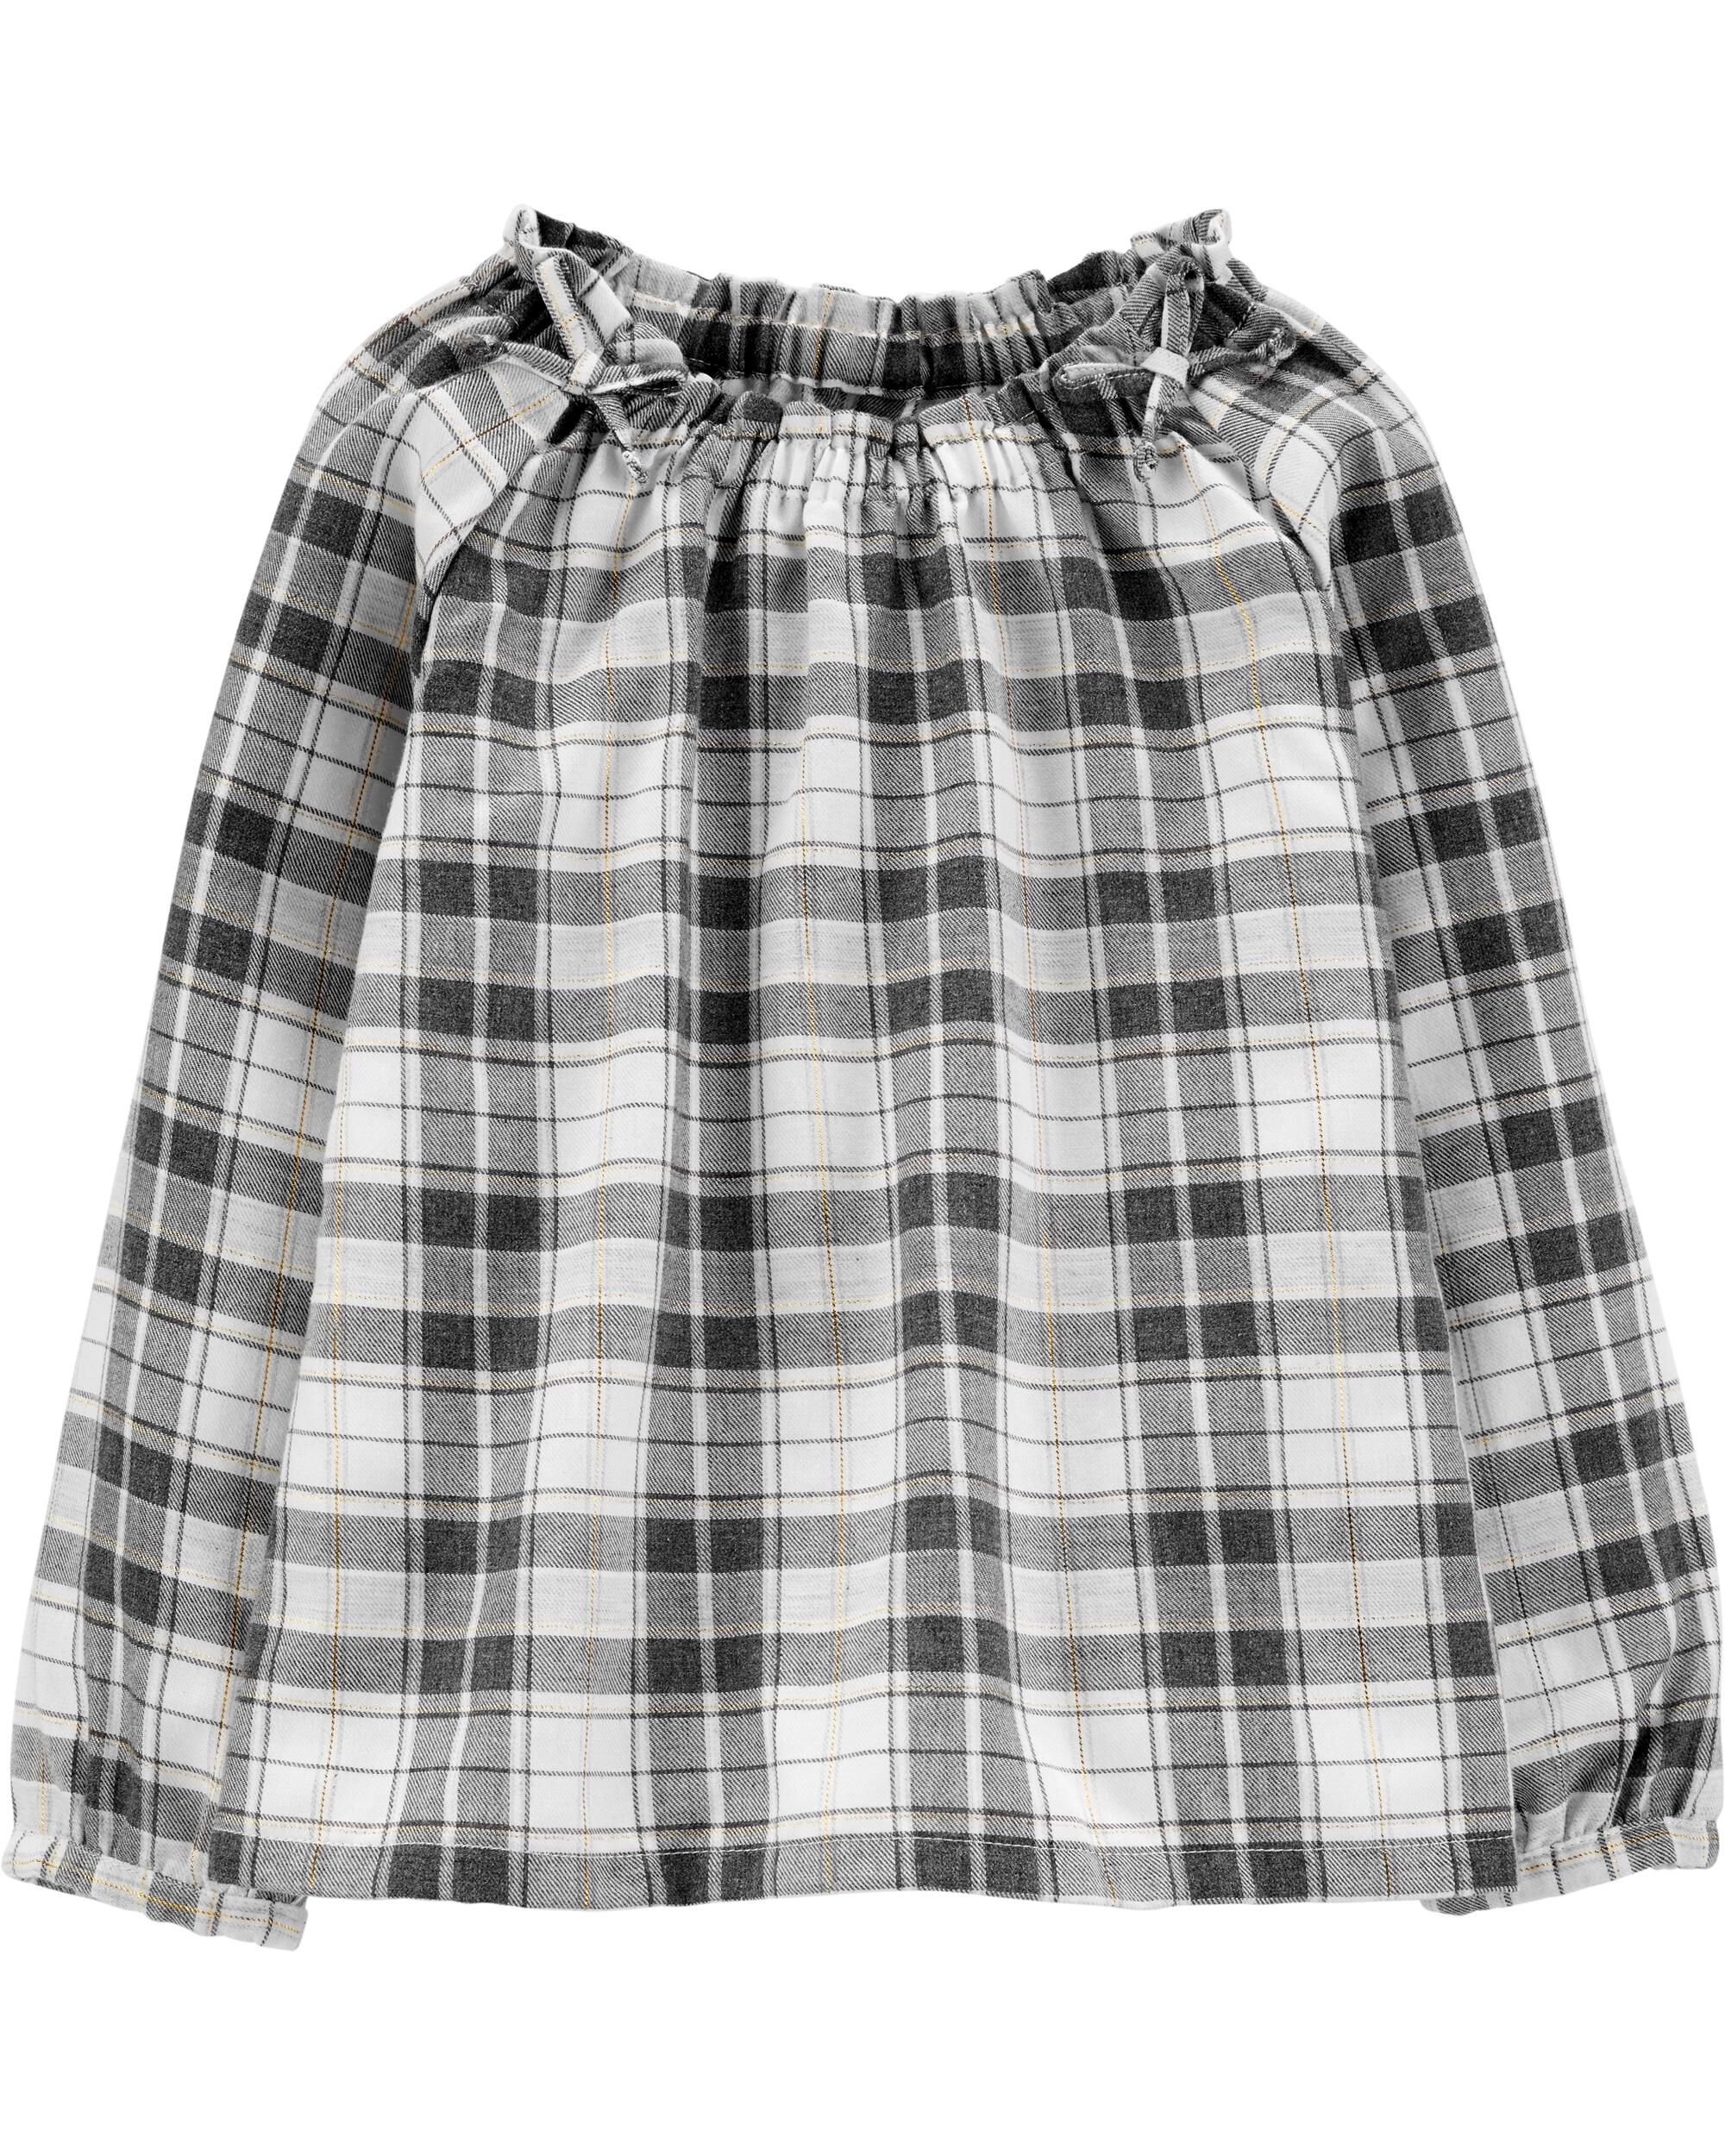 *Clearance*  Plaid Twill Top